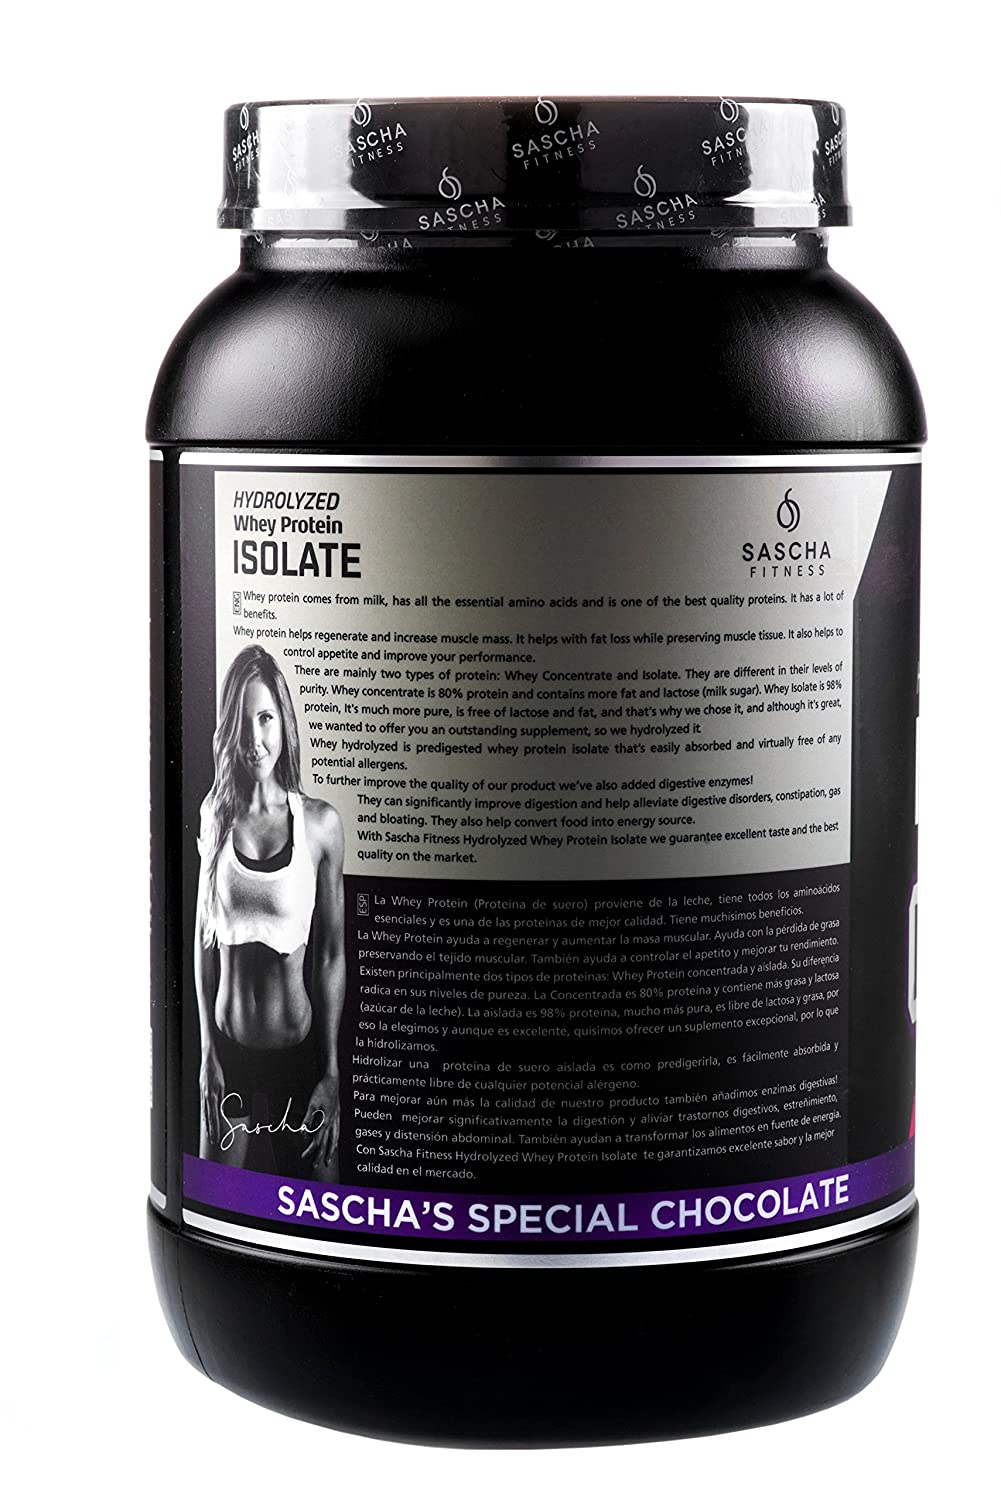 Amazon.com: Sascha Fitness Hydrolyzed Whey Protein Isolate,100% Grass-Fed (2 Pound,Chocolate): Health & Personal Care